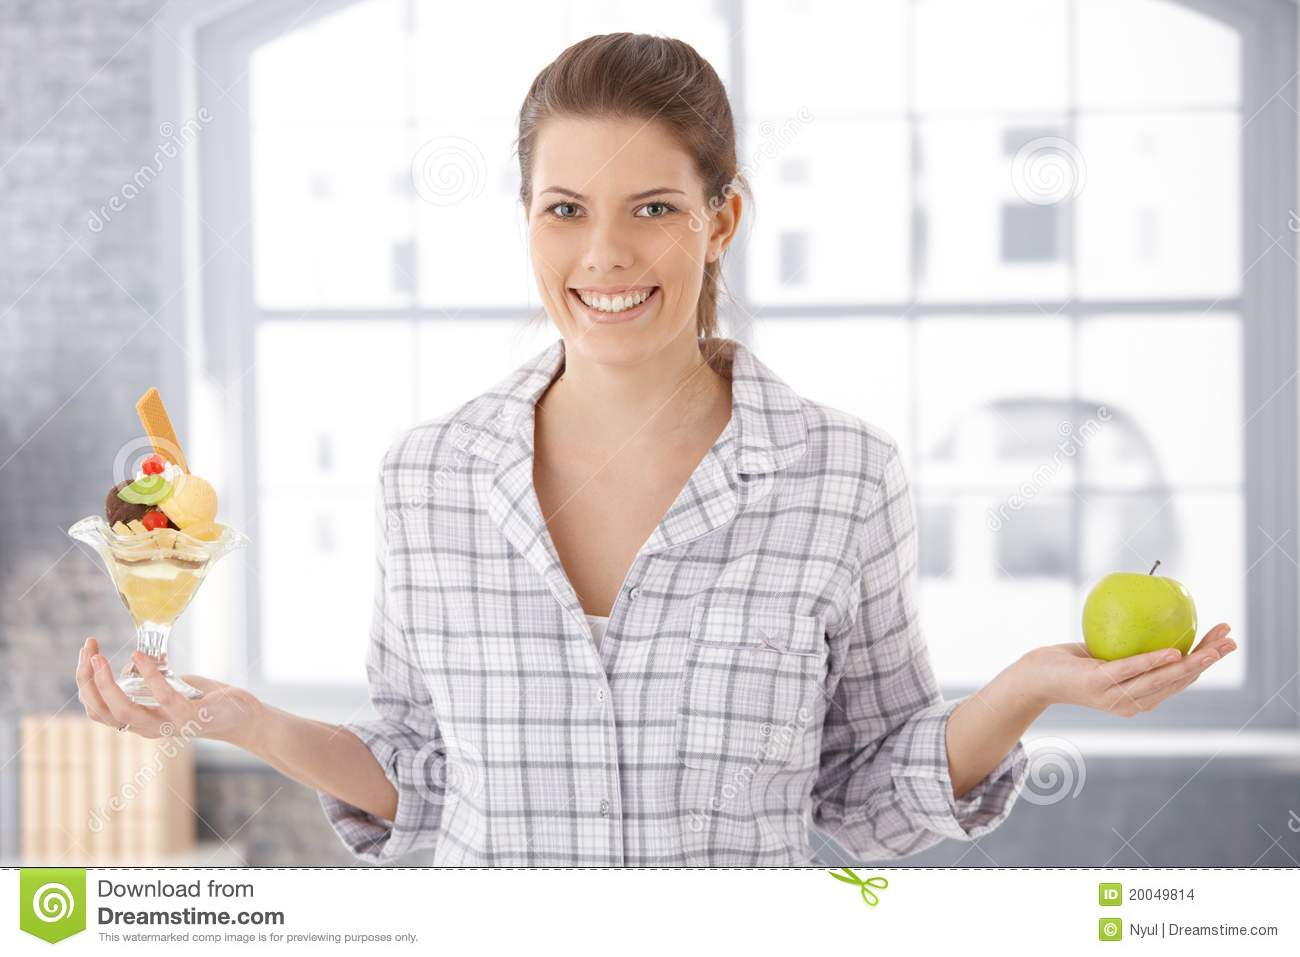 Happy woman holding icecream cup and apple